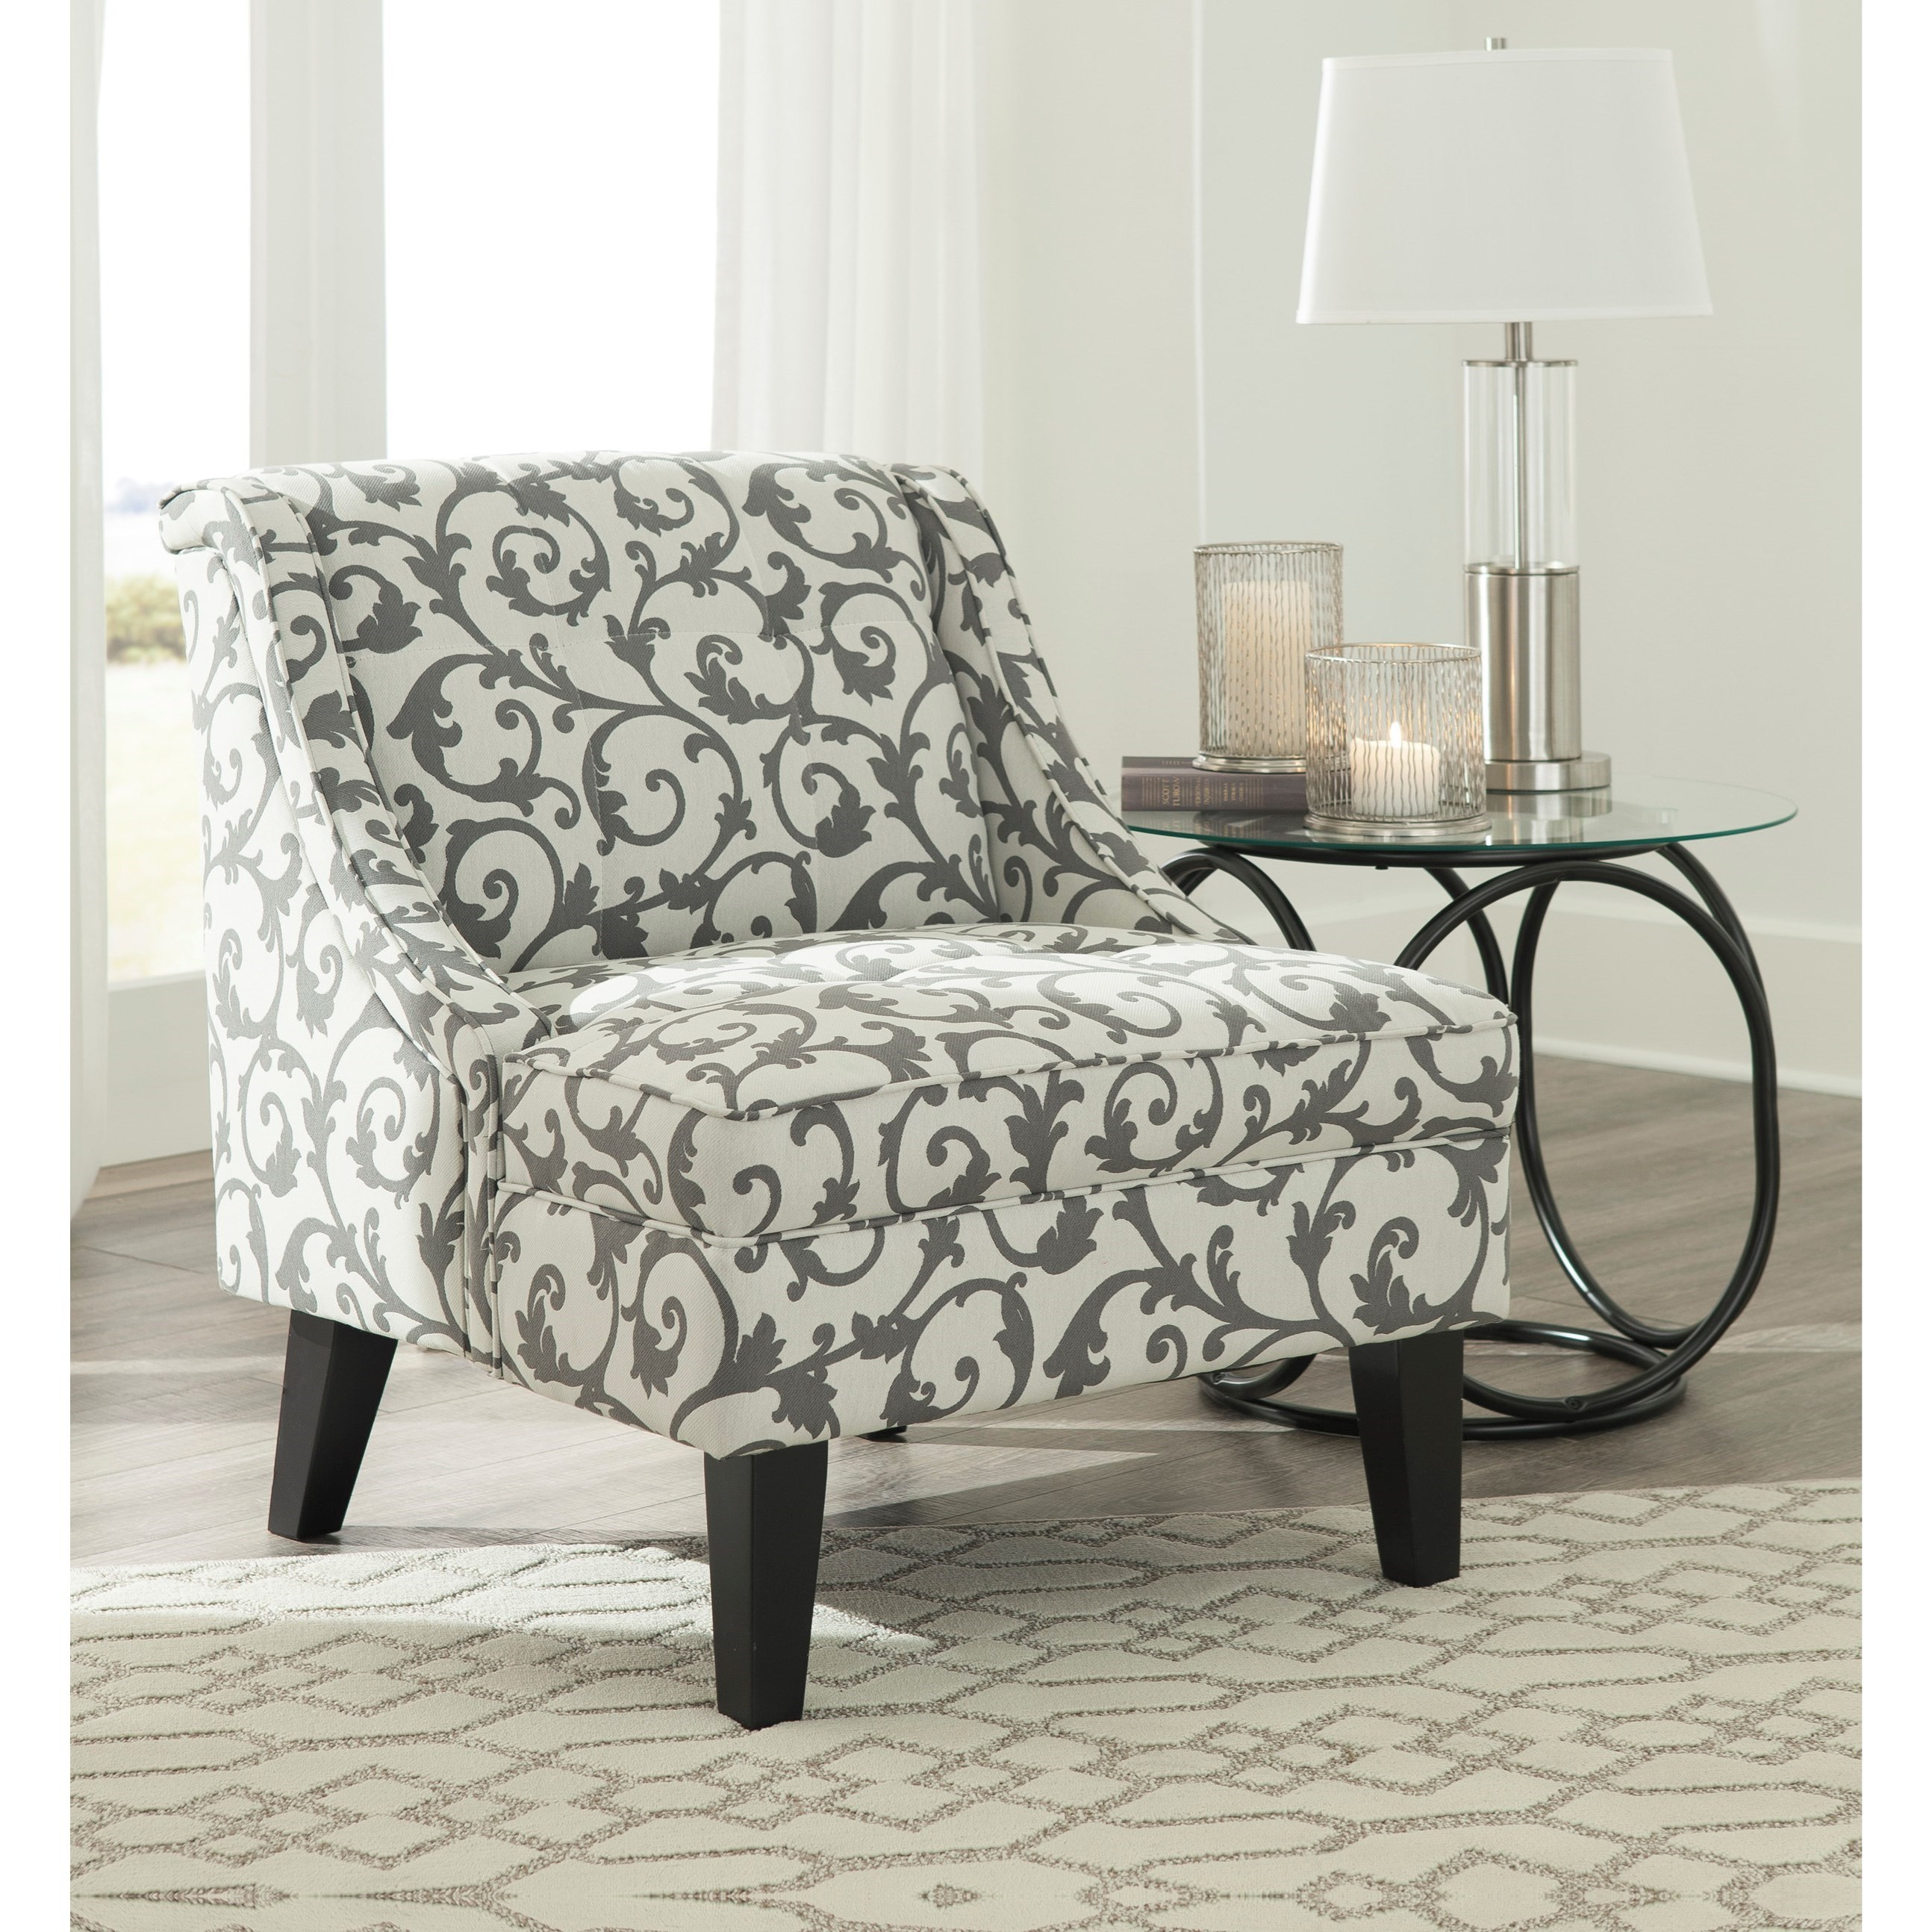 Ashley City Furniture: Ashley Furniture Kexlor Accent Chair